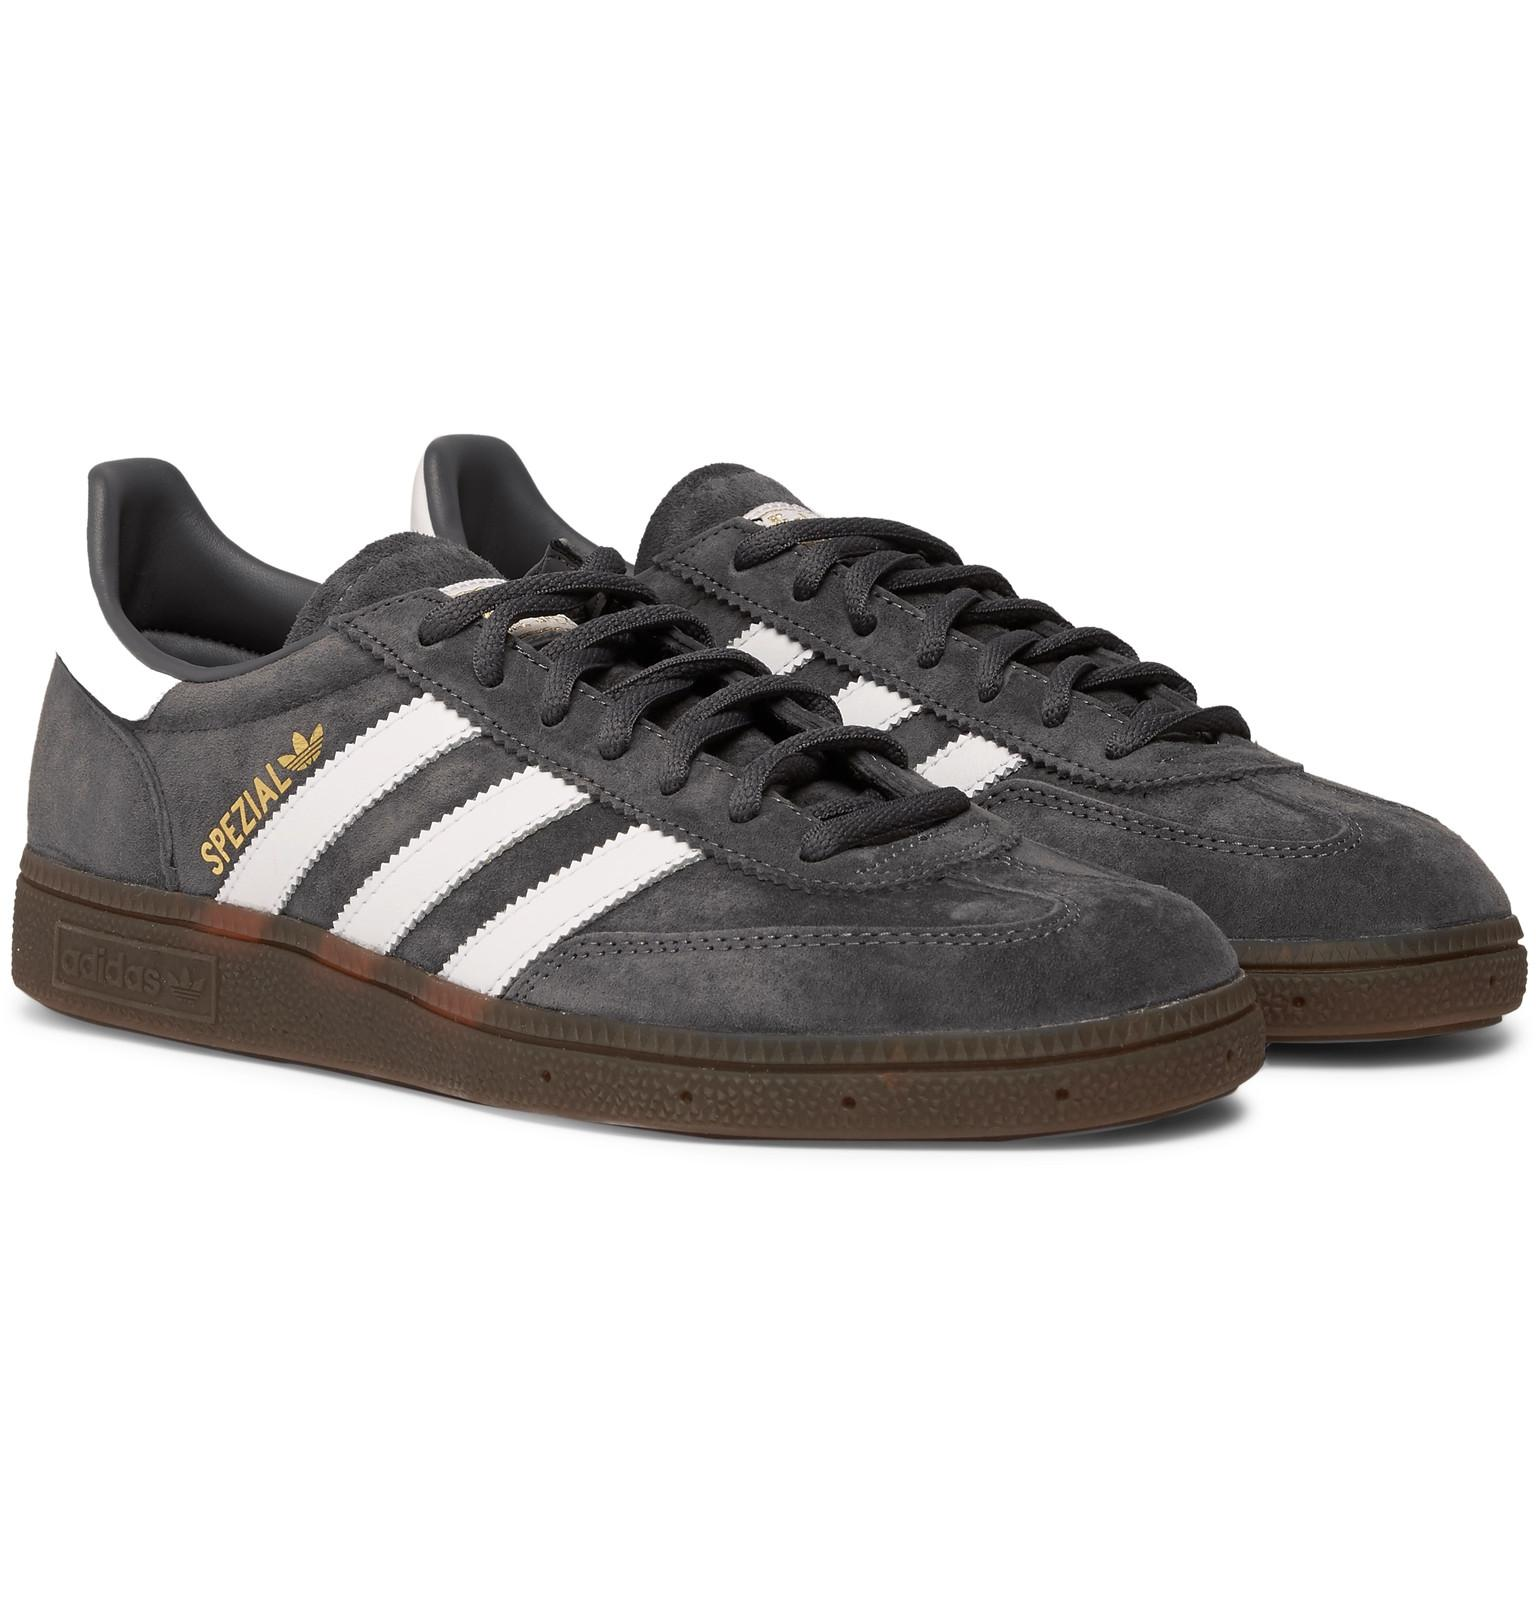 In Handball Sneakers Adidas Trimmed Spezial Leather Suede Originals 34A5jLR